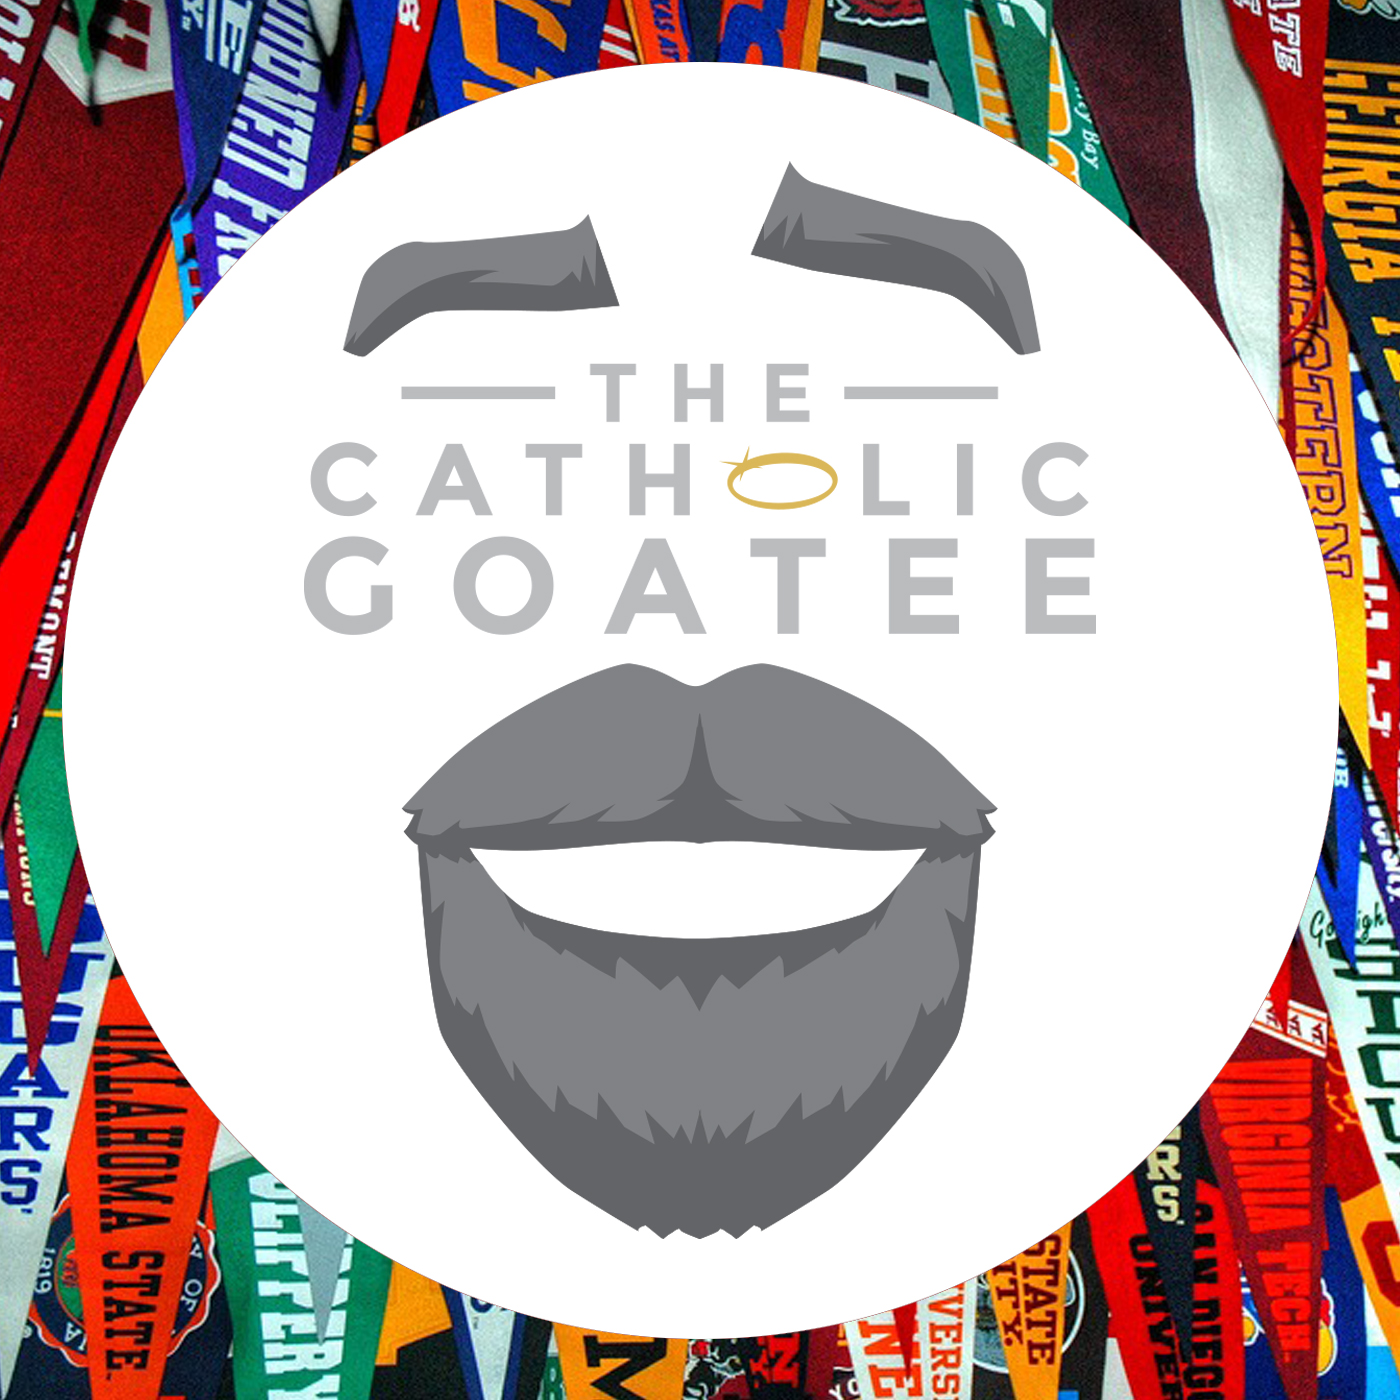 The Catholic Goatee